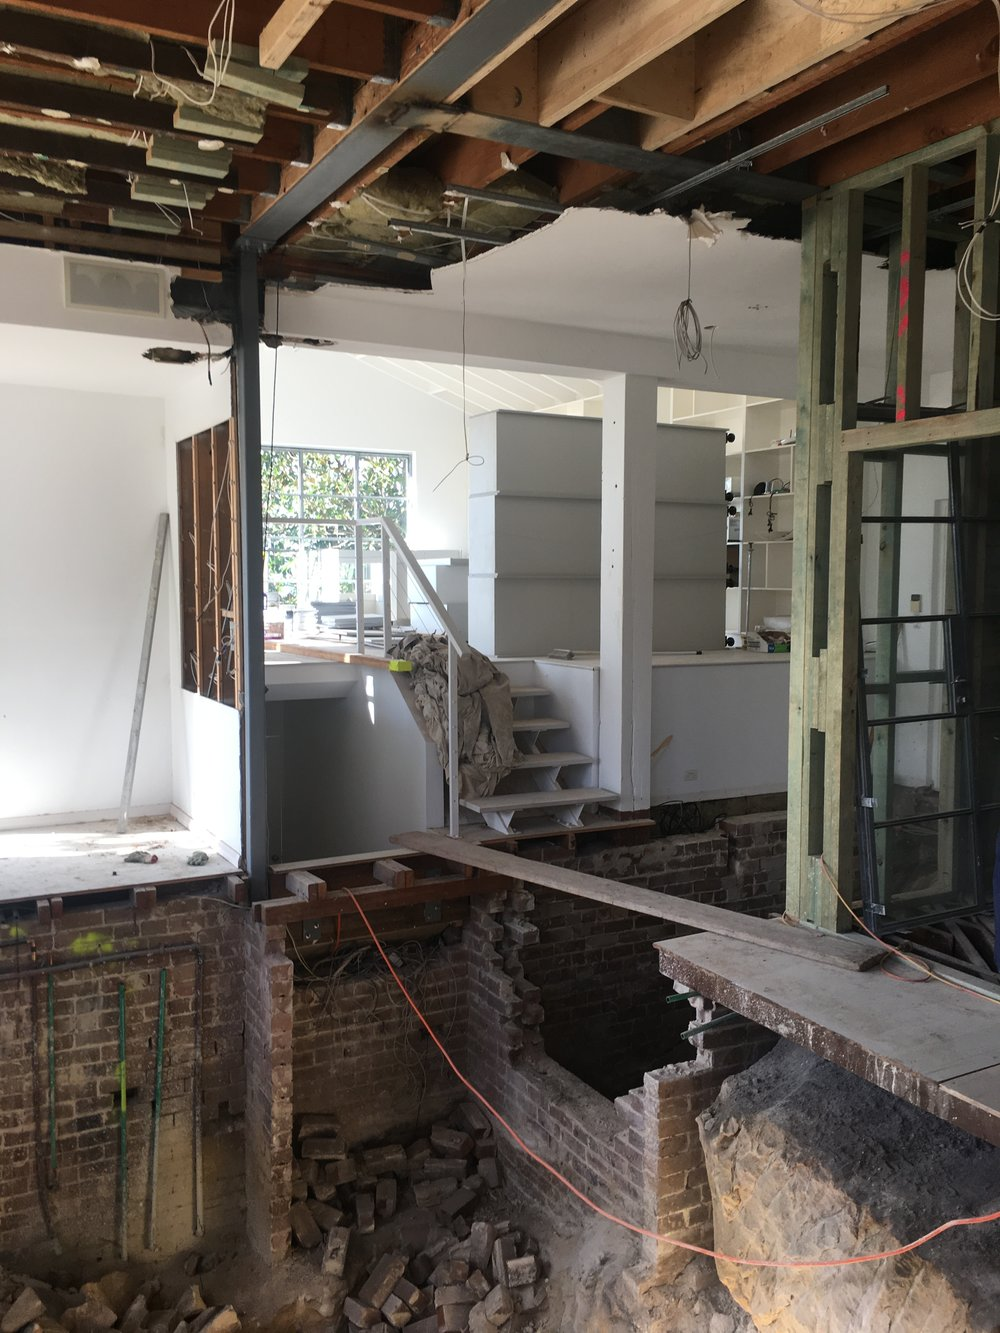 The stairs leading to the mezzanine level is currently accessed via a plank!